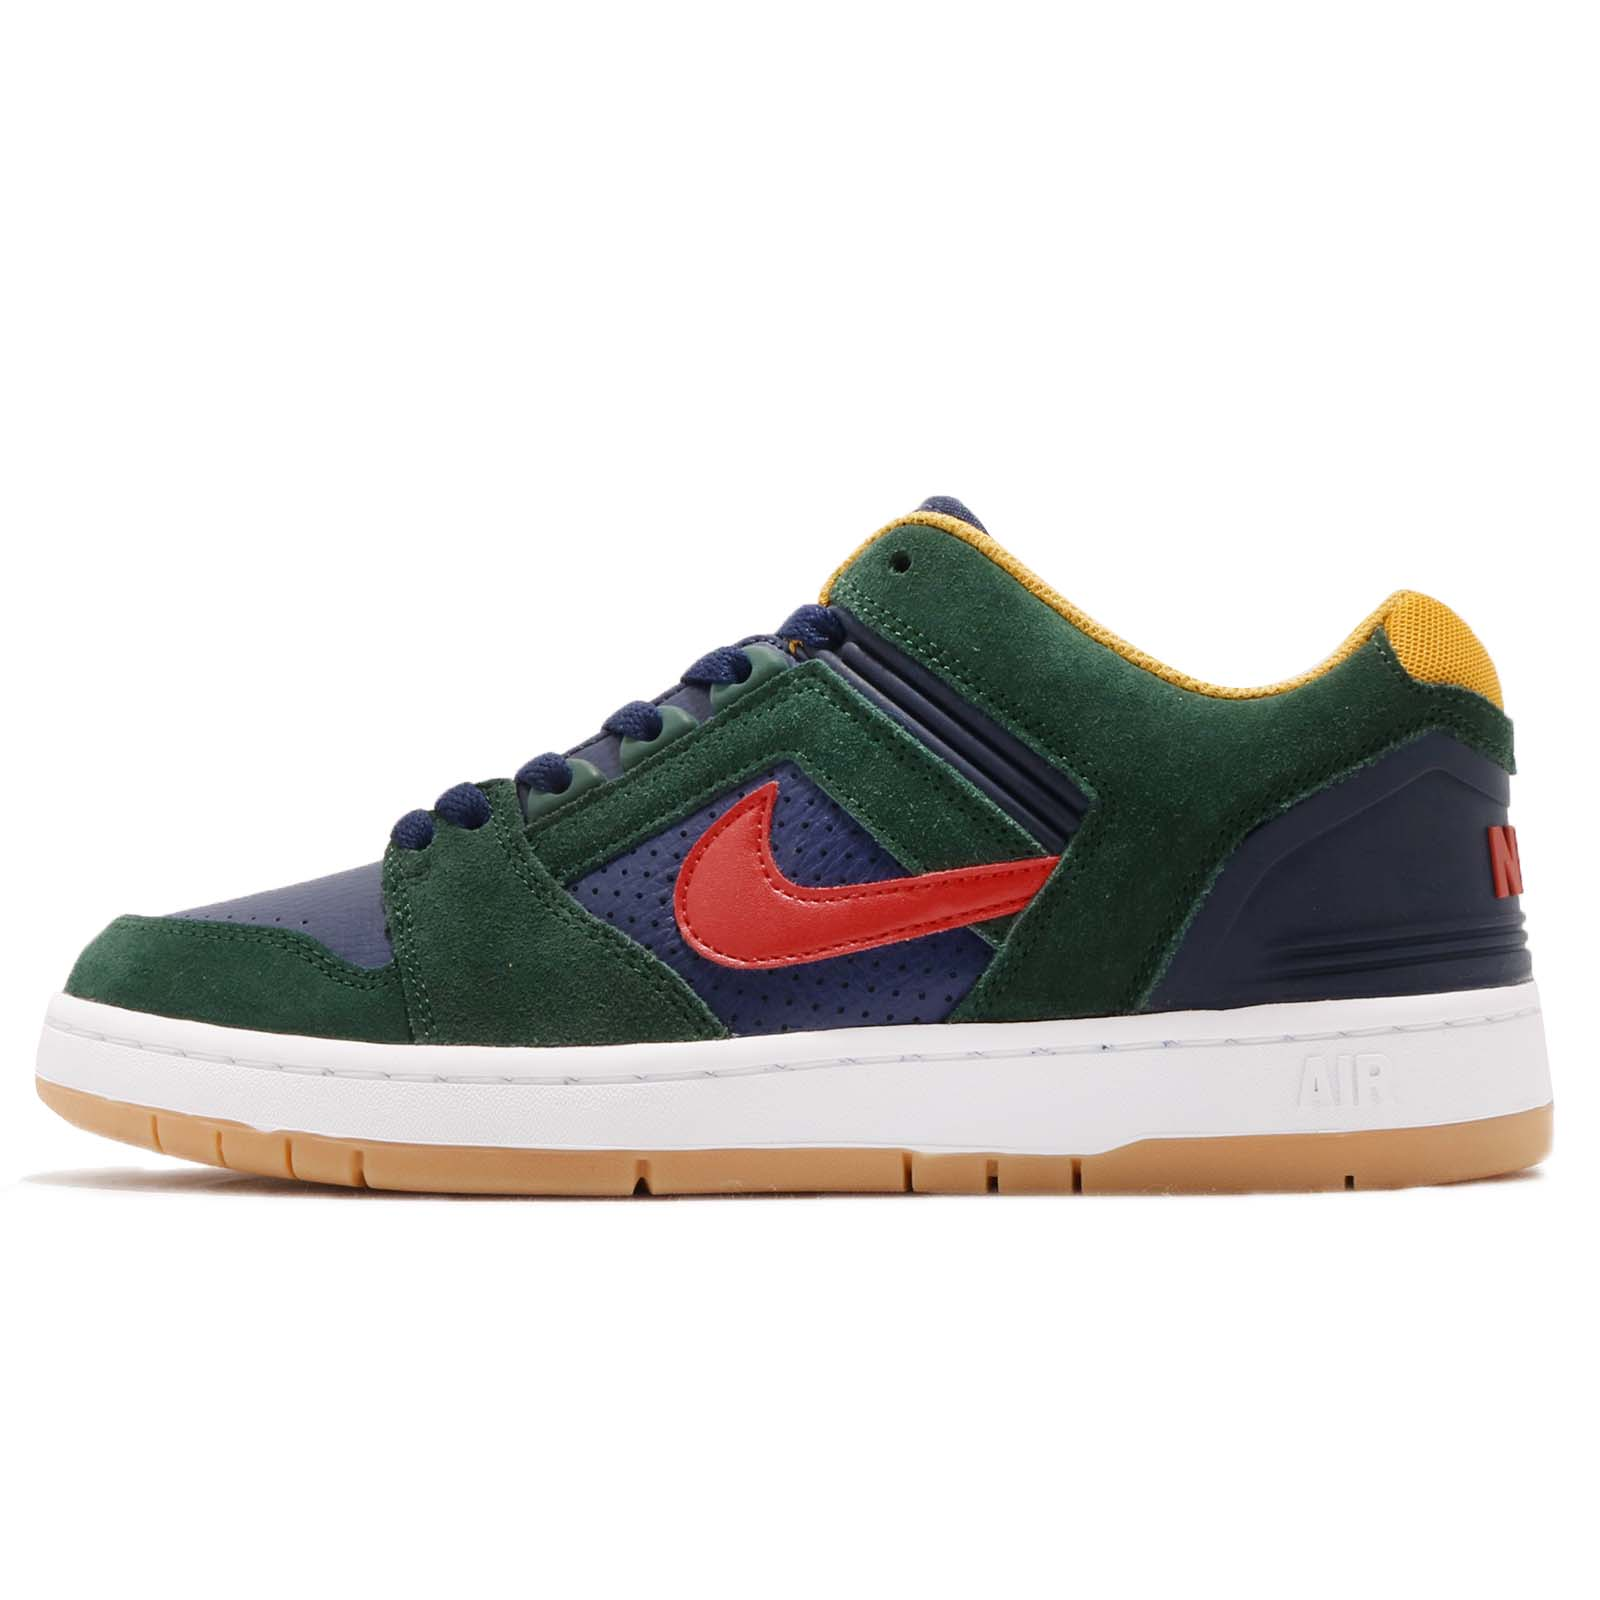 a09d6f076ca Nike SB Air Force II Low 2 Midnight Green Gum Men Skate Boarding Shoe  AO0300-364